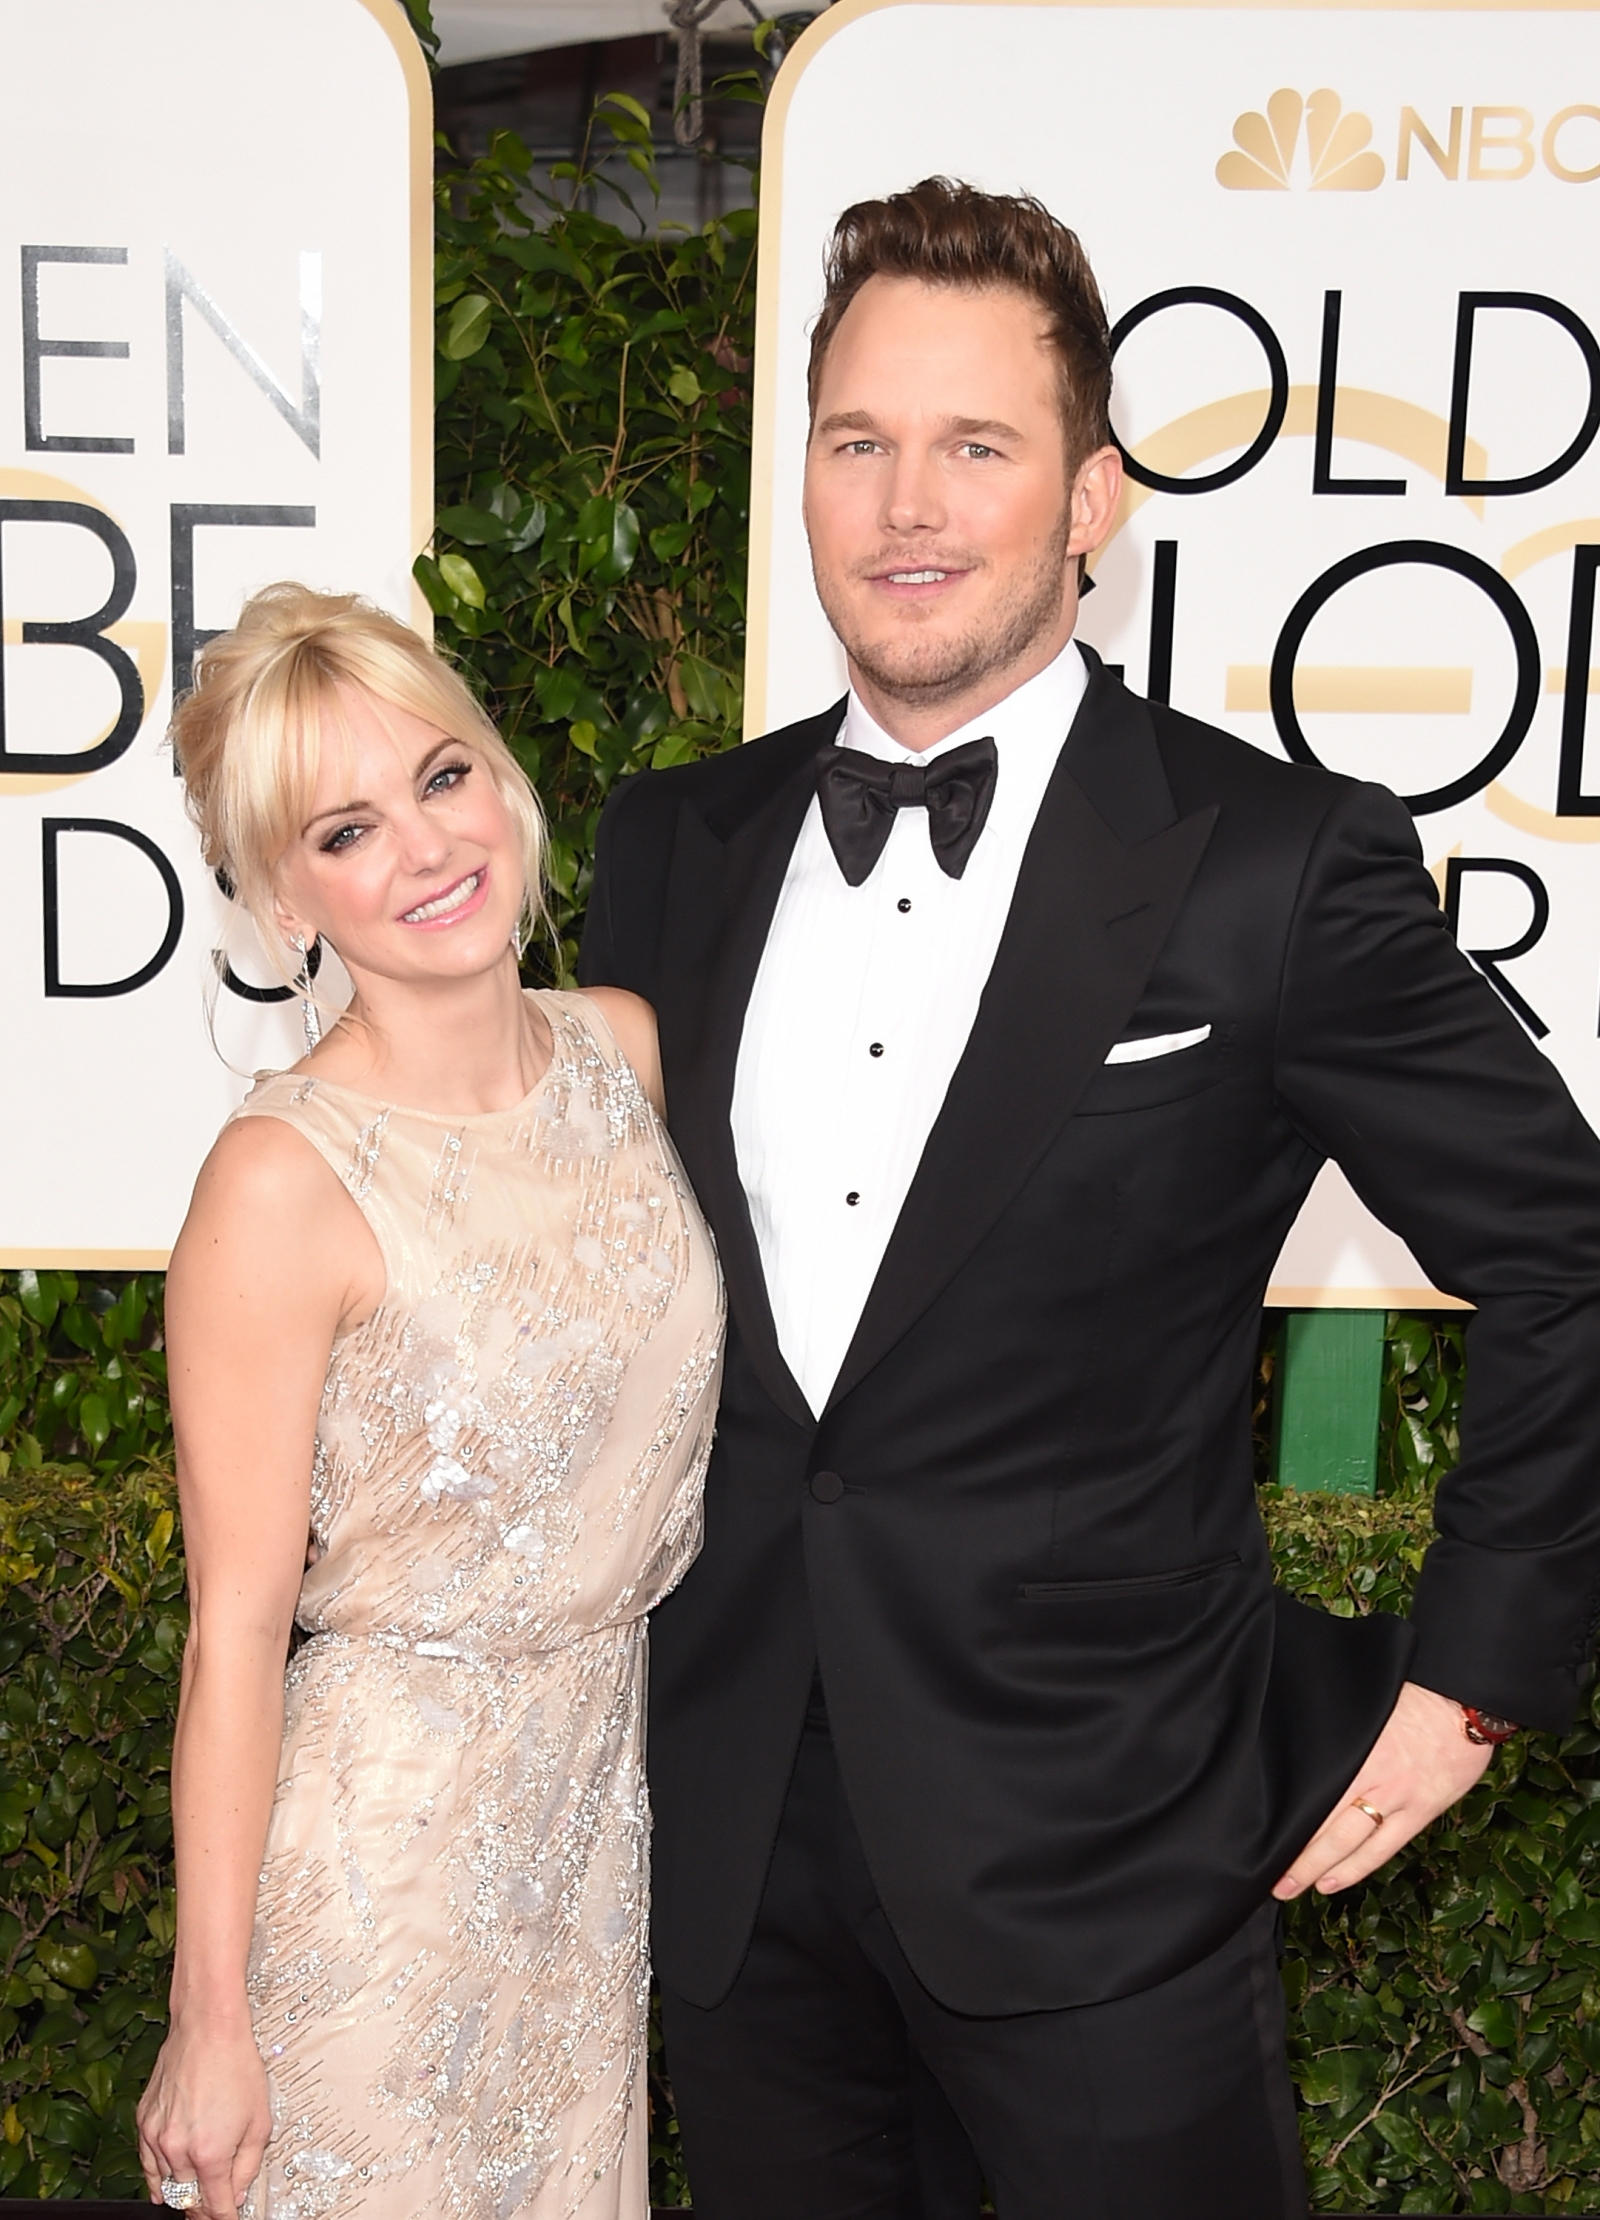 Here's why Anna Faris 'has no desire to start dating' after Chris Pratt split